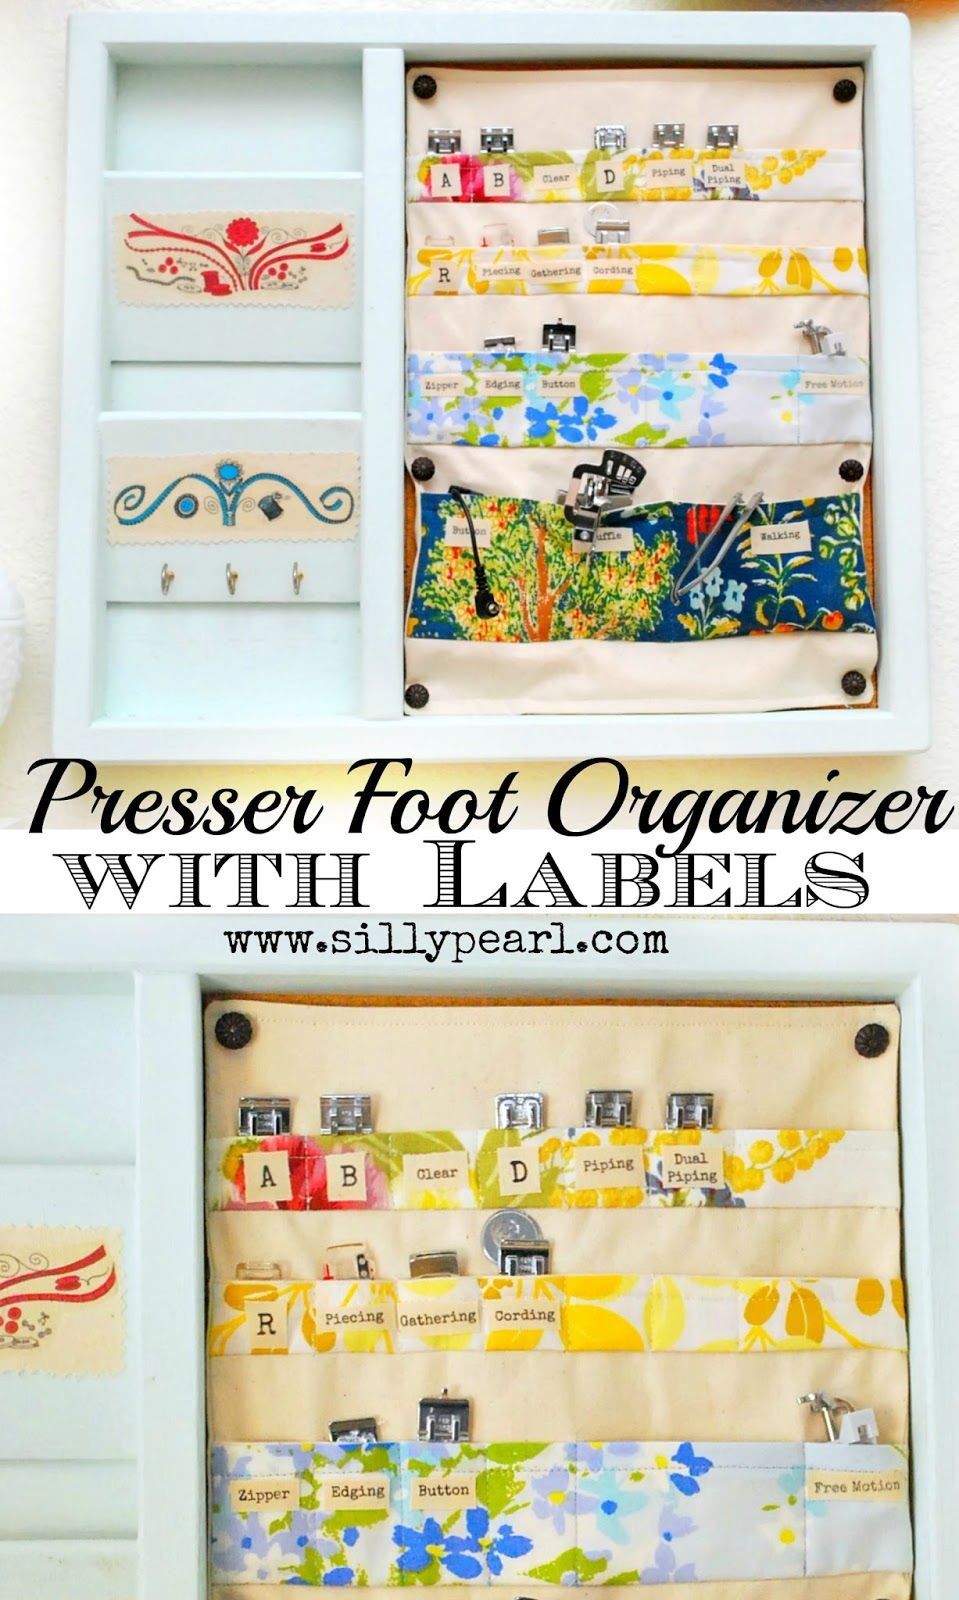 The Silly Pearl {Handmade}: Presser Foot Organizer with TAP Labels